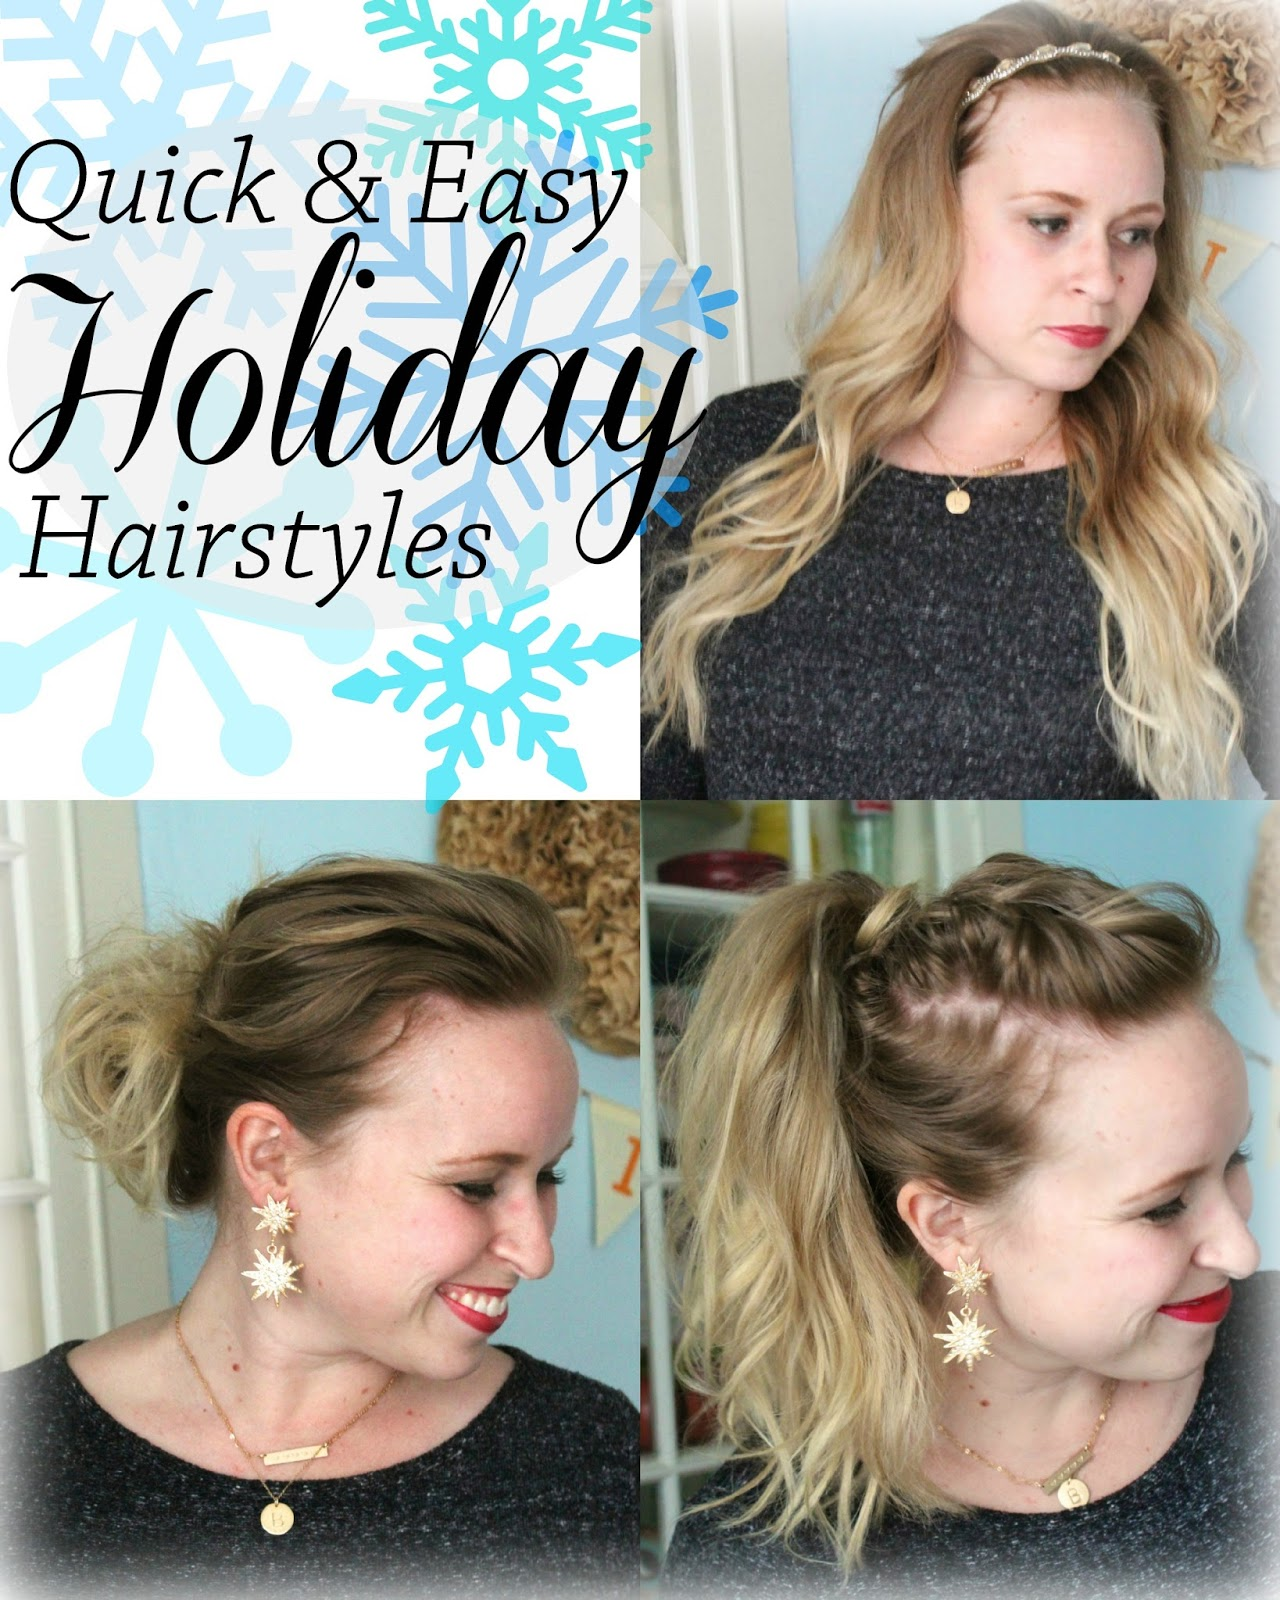 Breezy Days: Quick and Easy Holiday Hairstyles